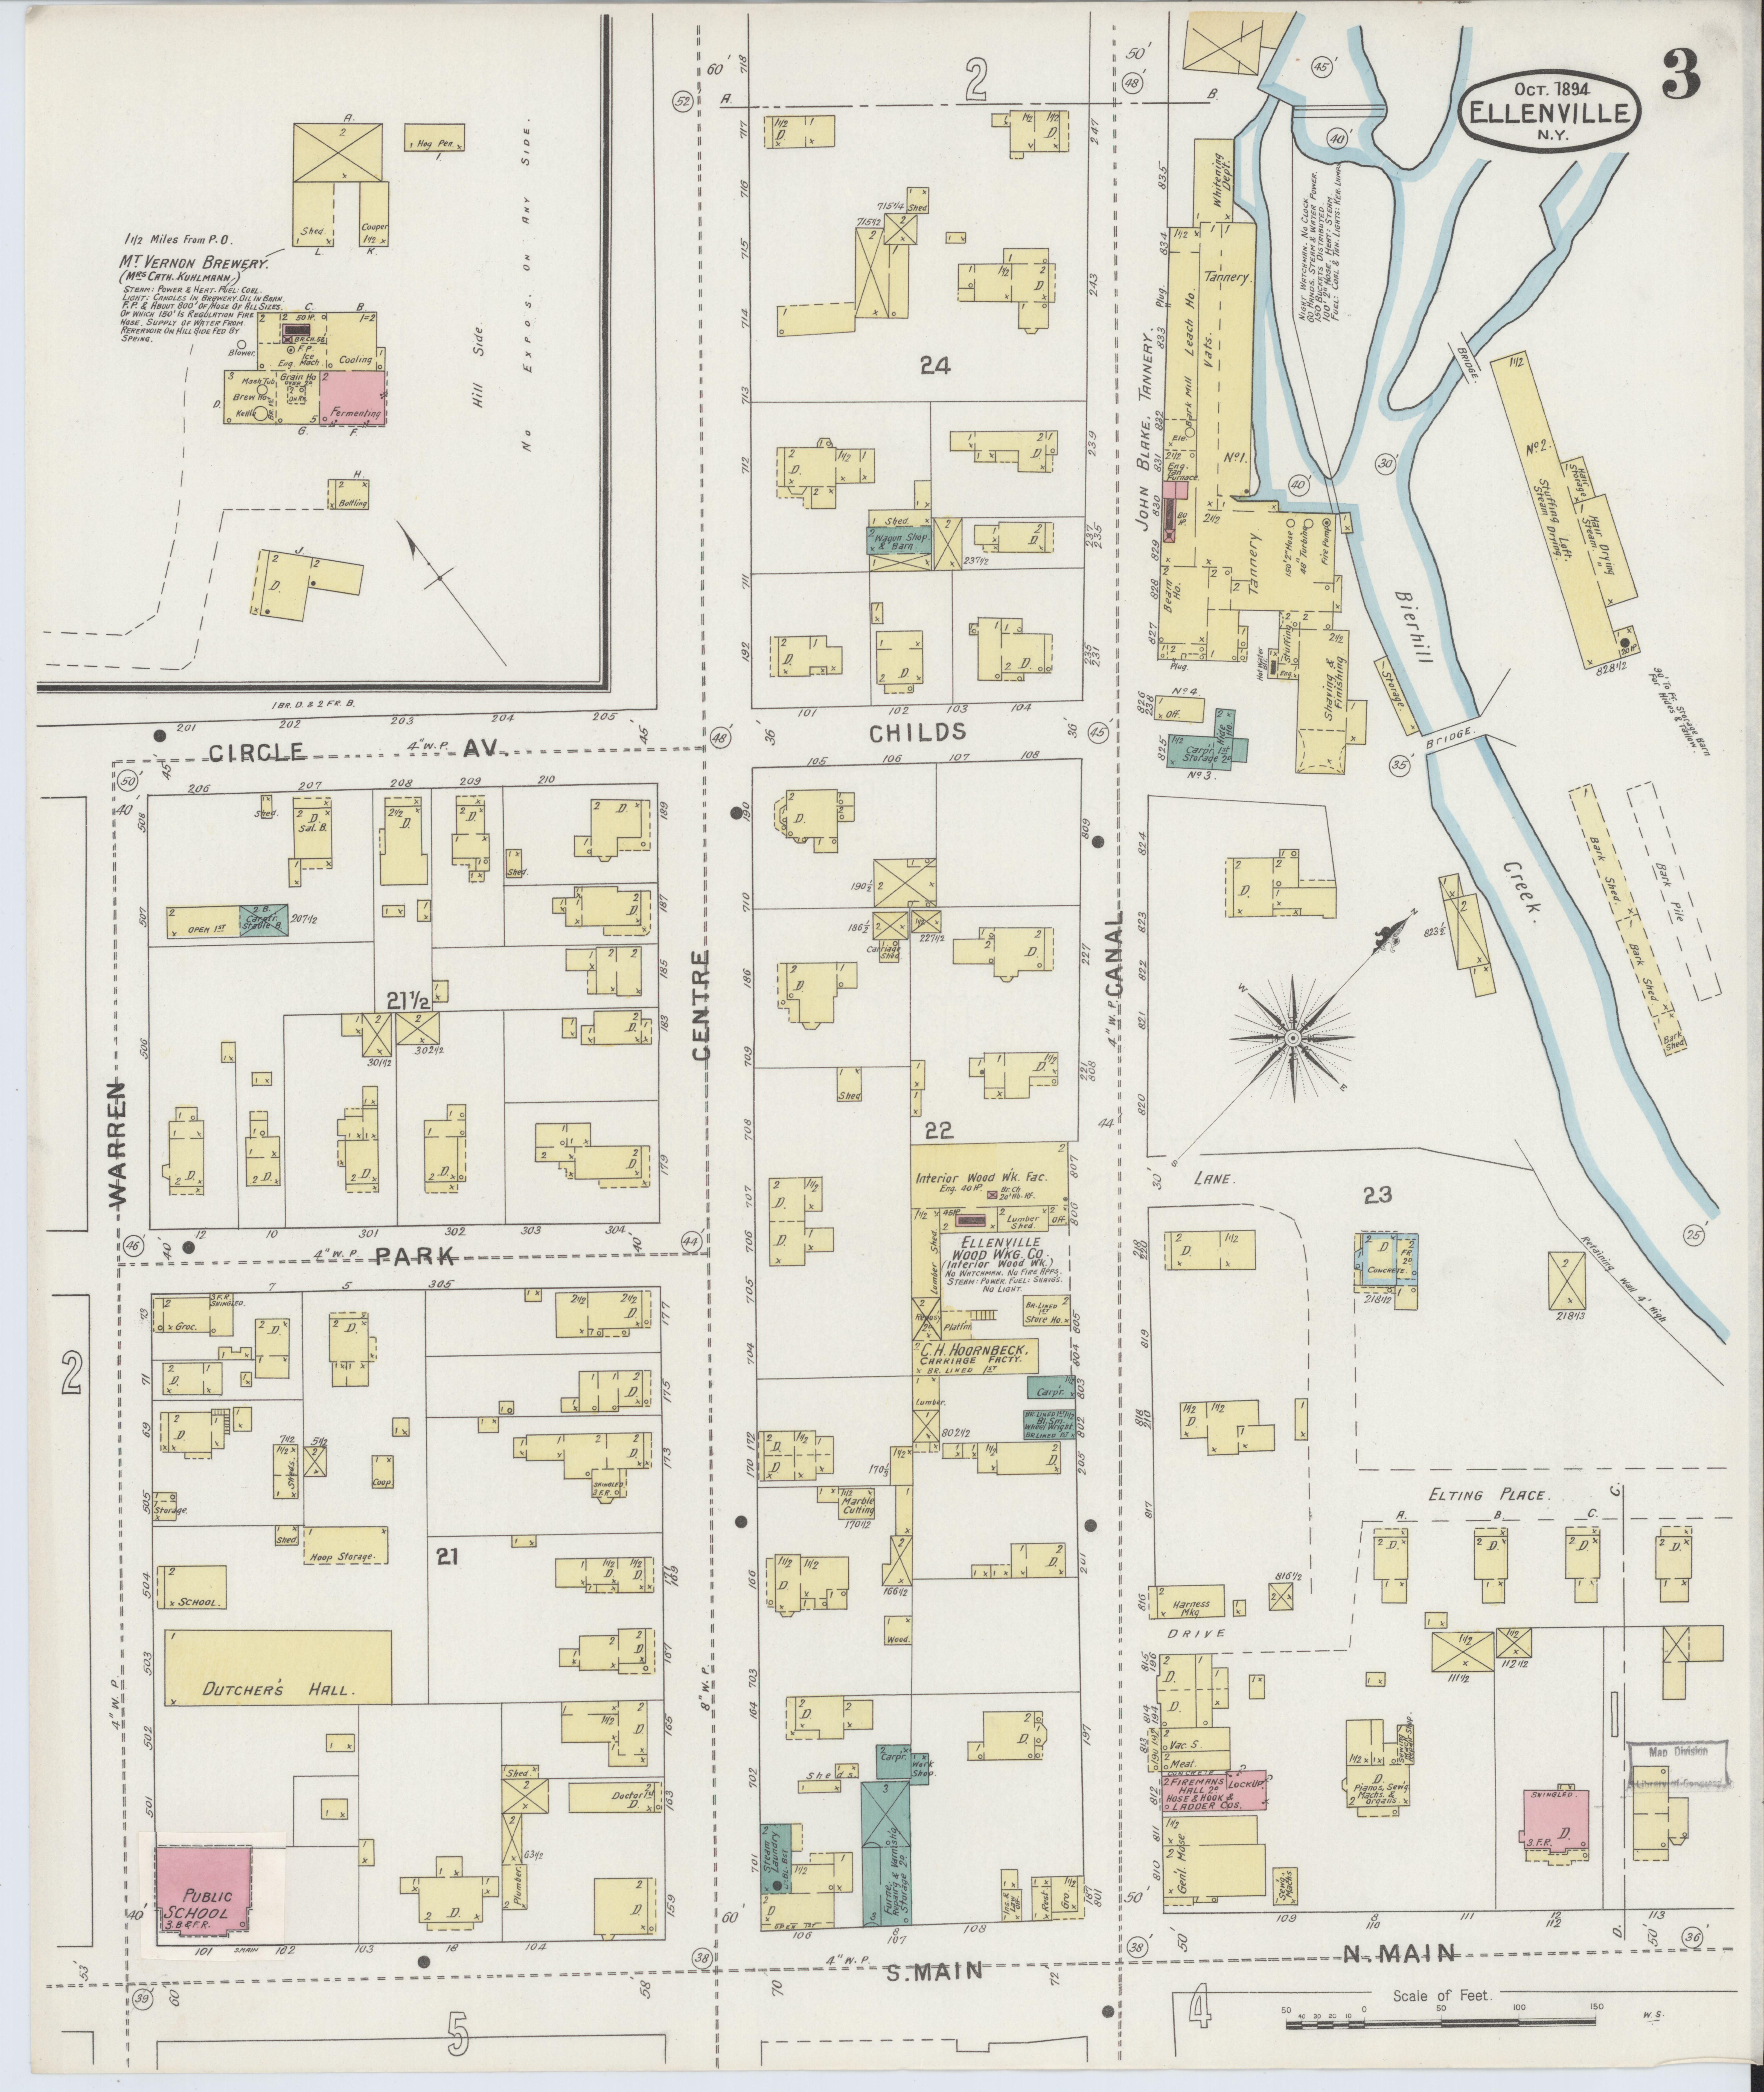 Ulster County New York Map.File Sanborn Fire Insurance Map From Ellenville Ulster County New